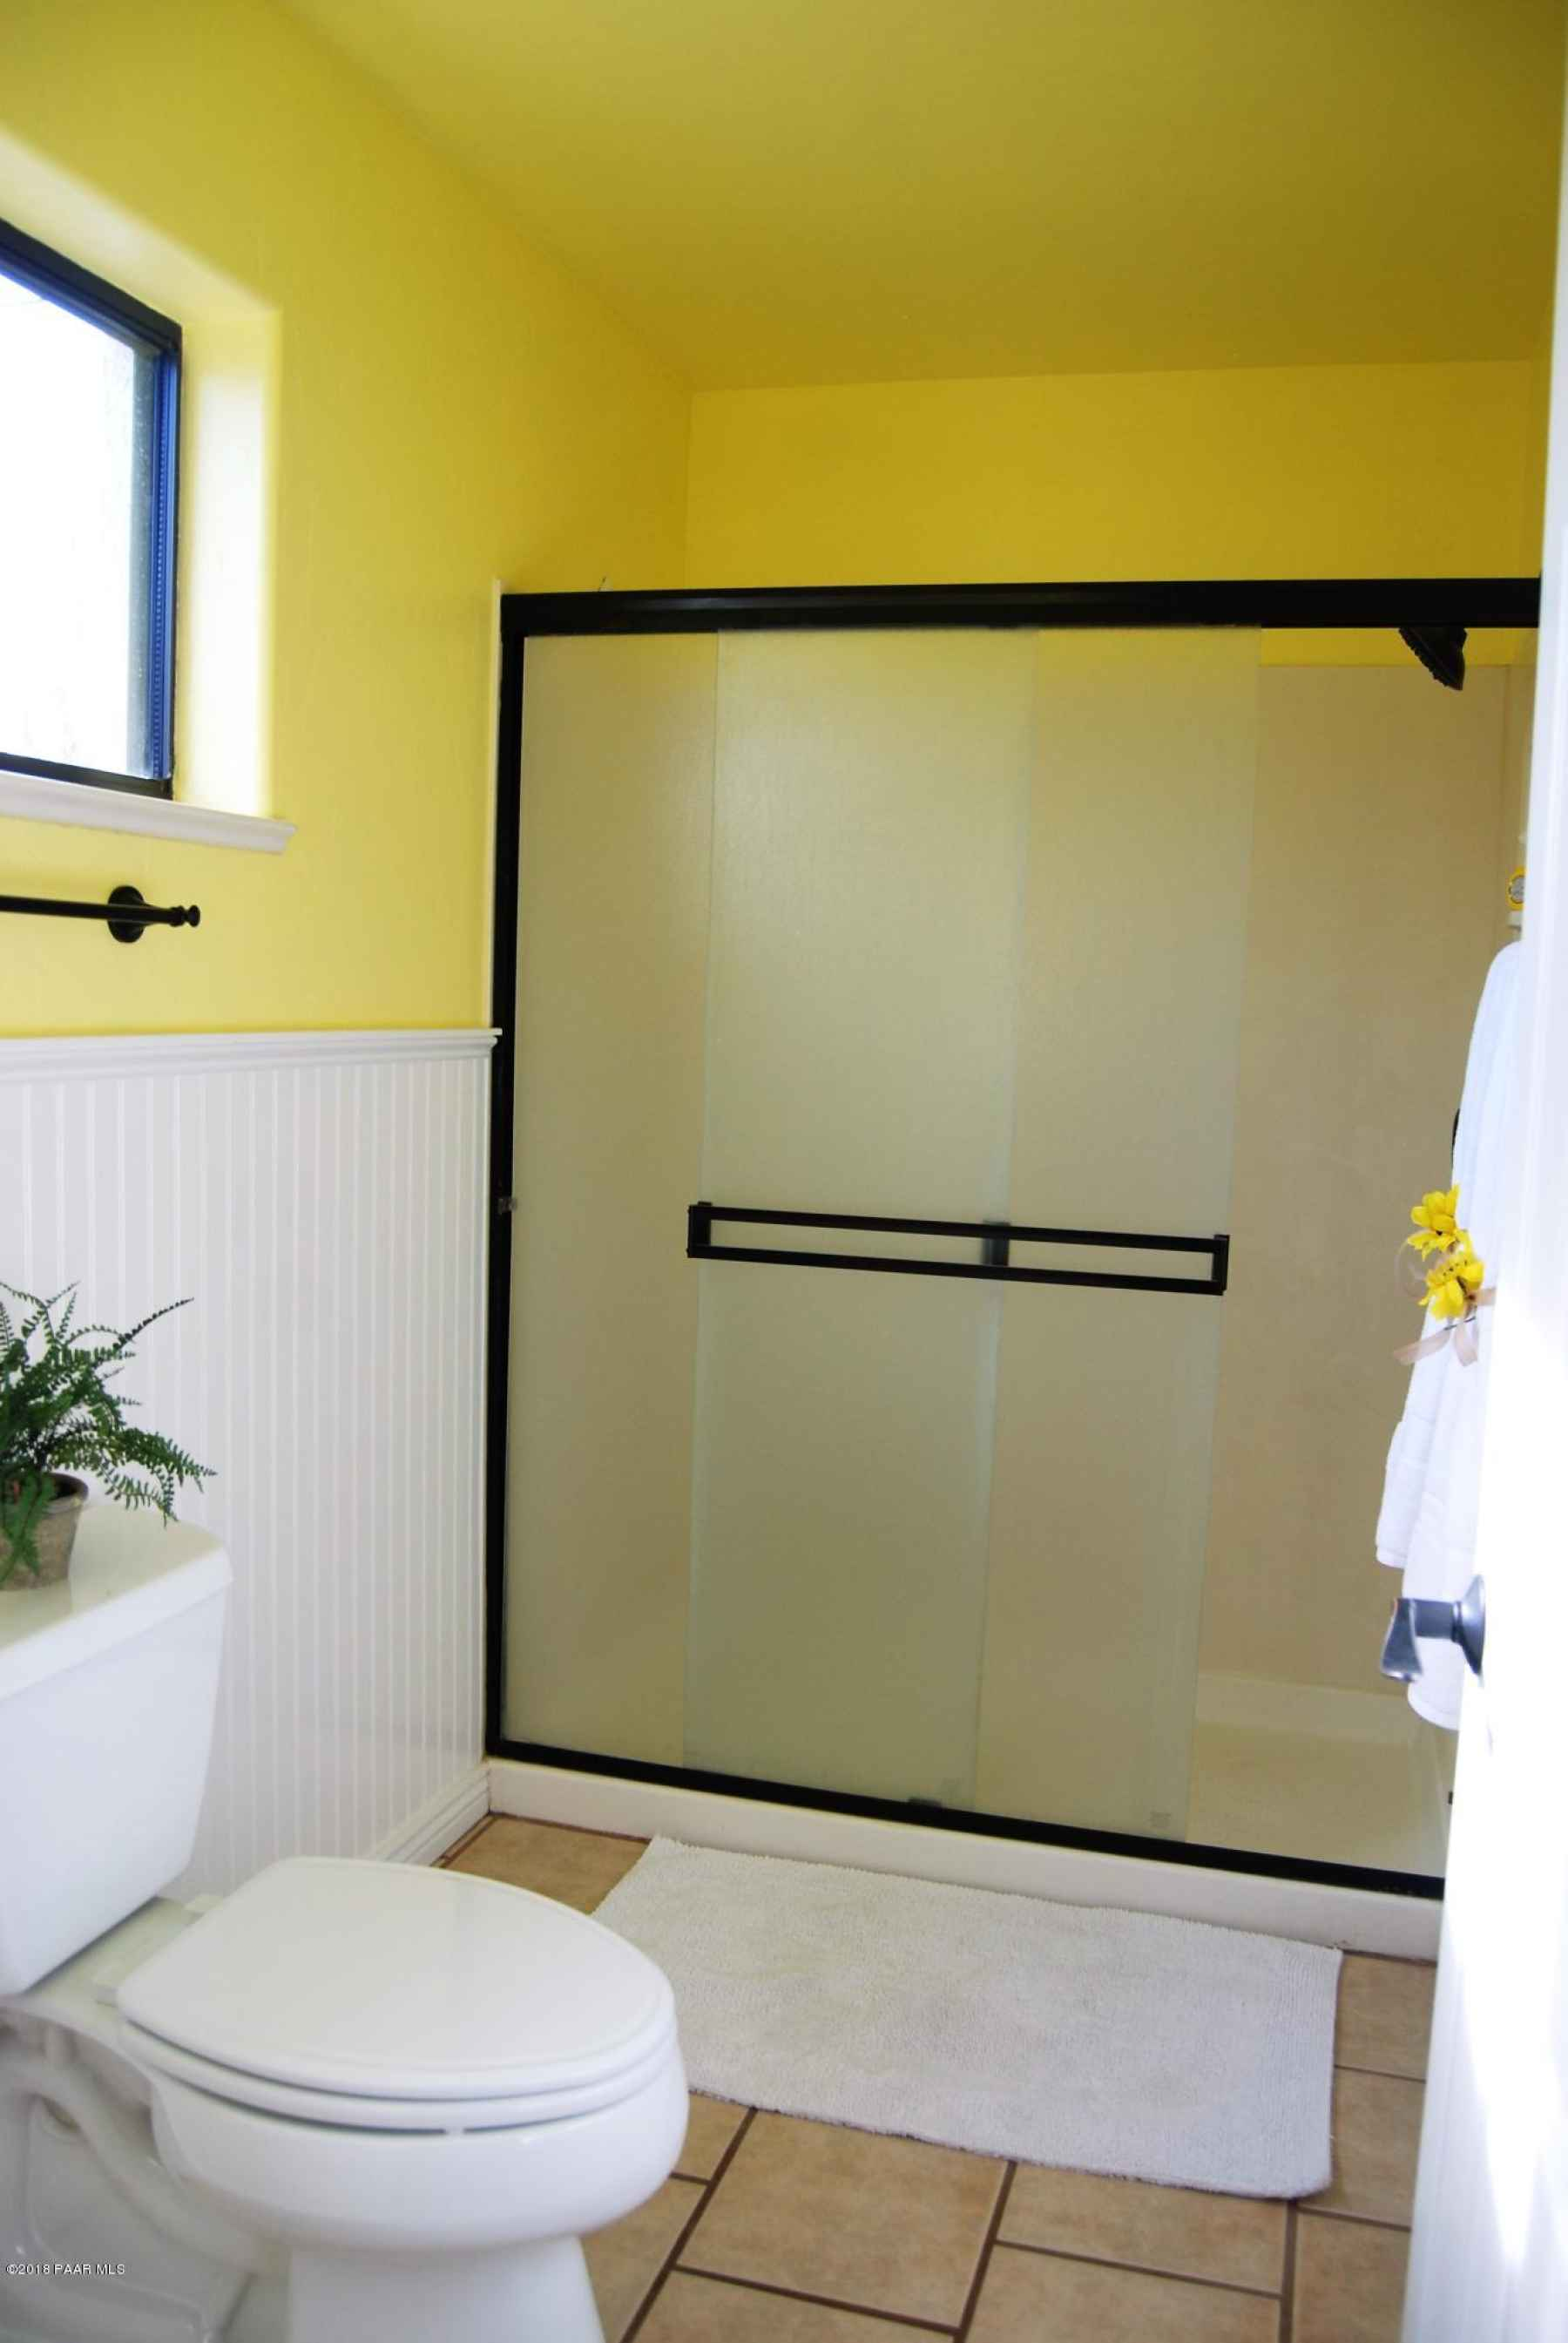 Separate room with toilet and shower in